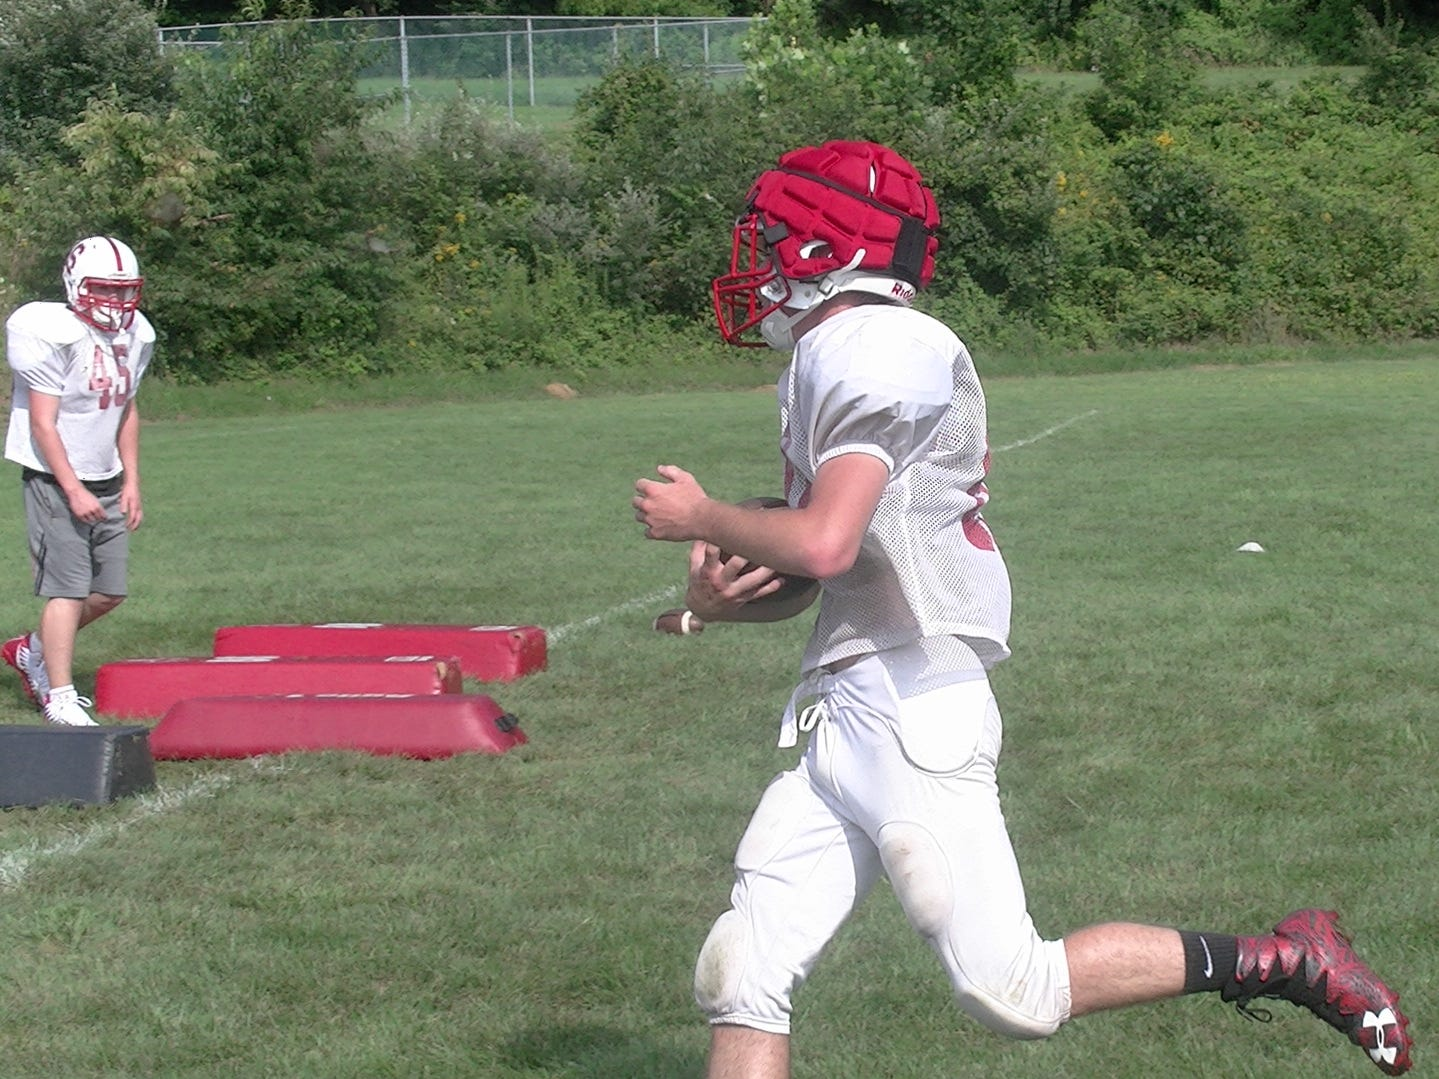 A Susquehannock football players runs with the ball during the first day of fall practice on Monday.